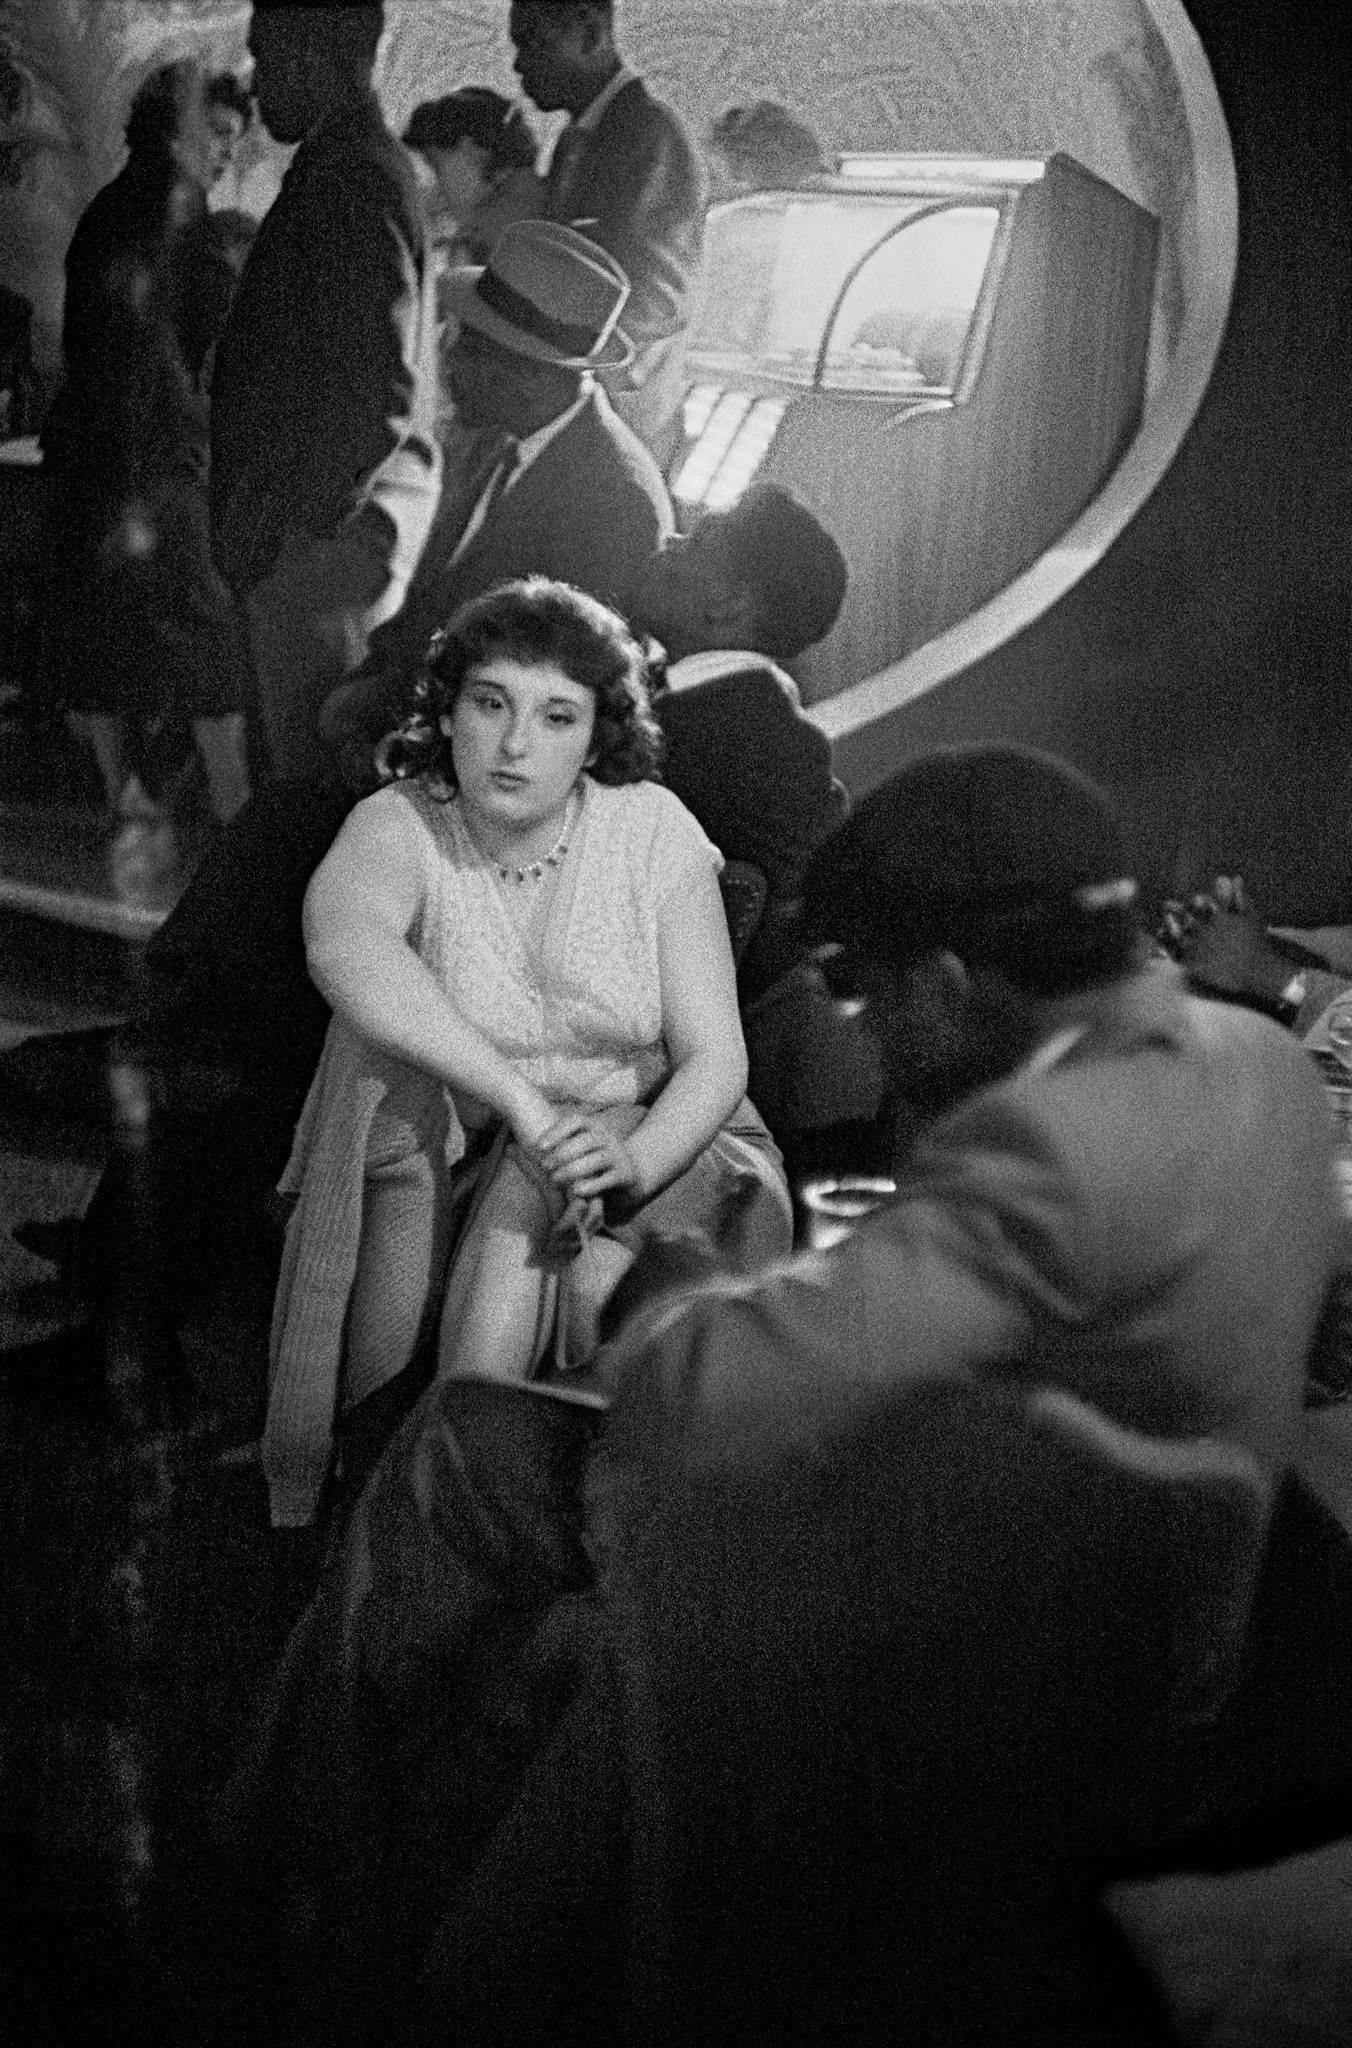 Frank Horvat 1956, Paris, Place Pigalle, bar scene.